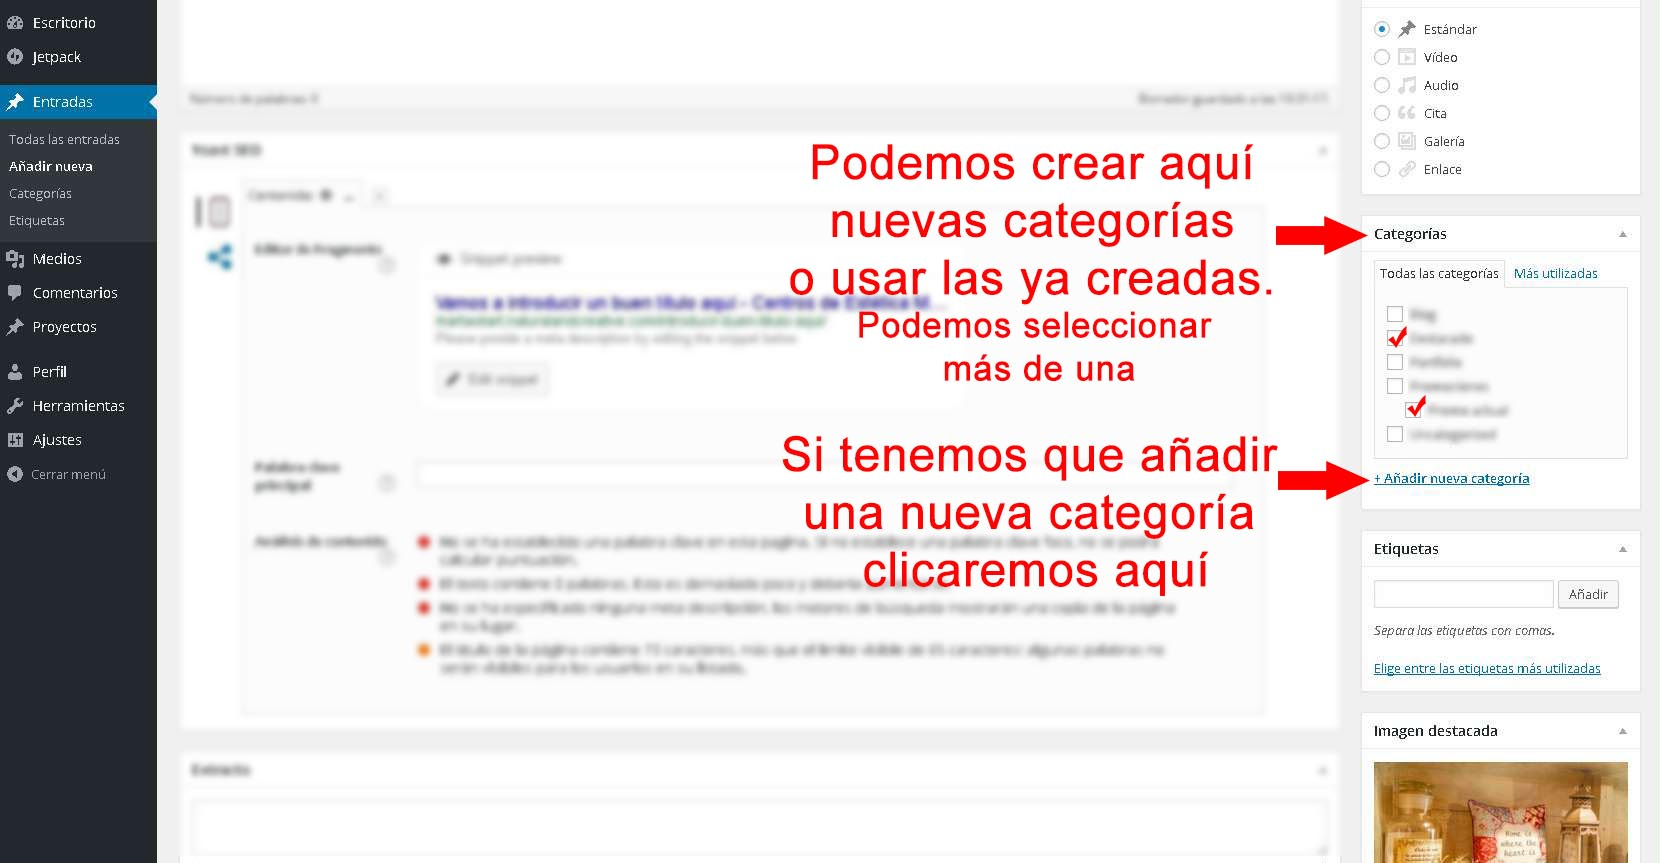 editar blog wordpresss, editar entrada, editar categorias, wordpress, editar etiquetas, editar post, insertar imagen